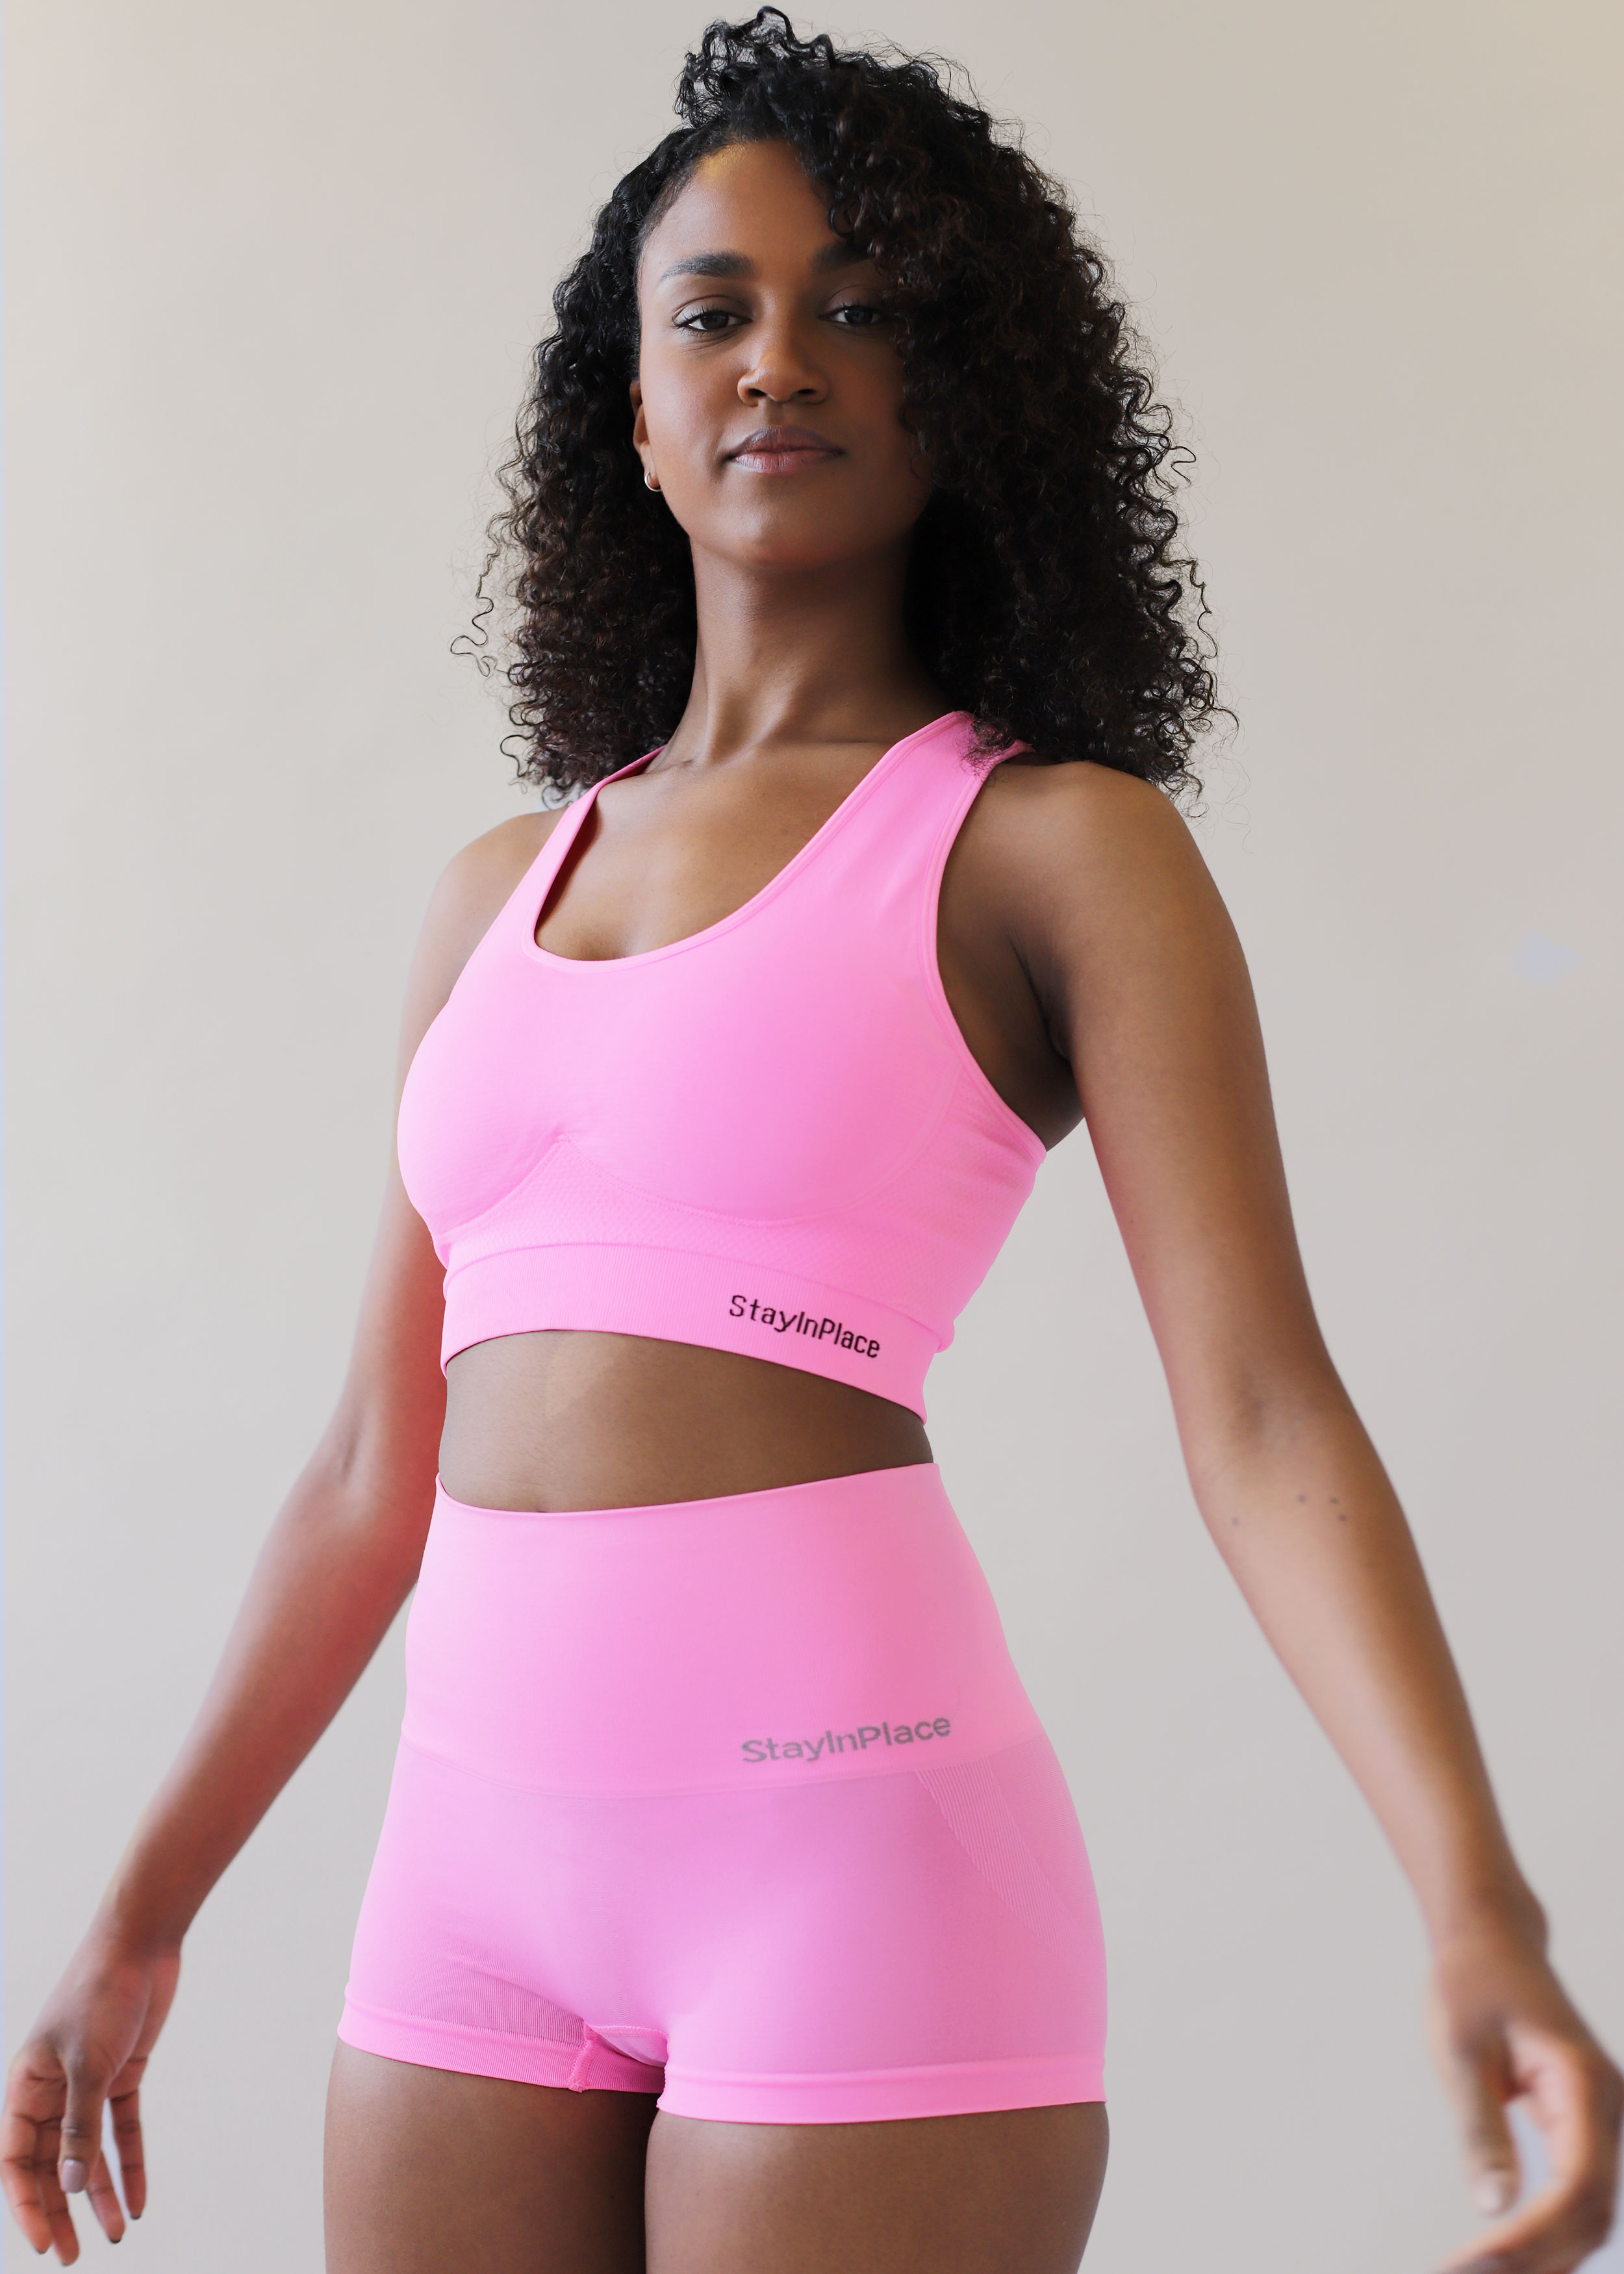 SHOP THE LOOK - SEAMLESS BRIGHT ROSE